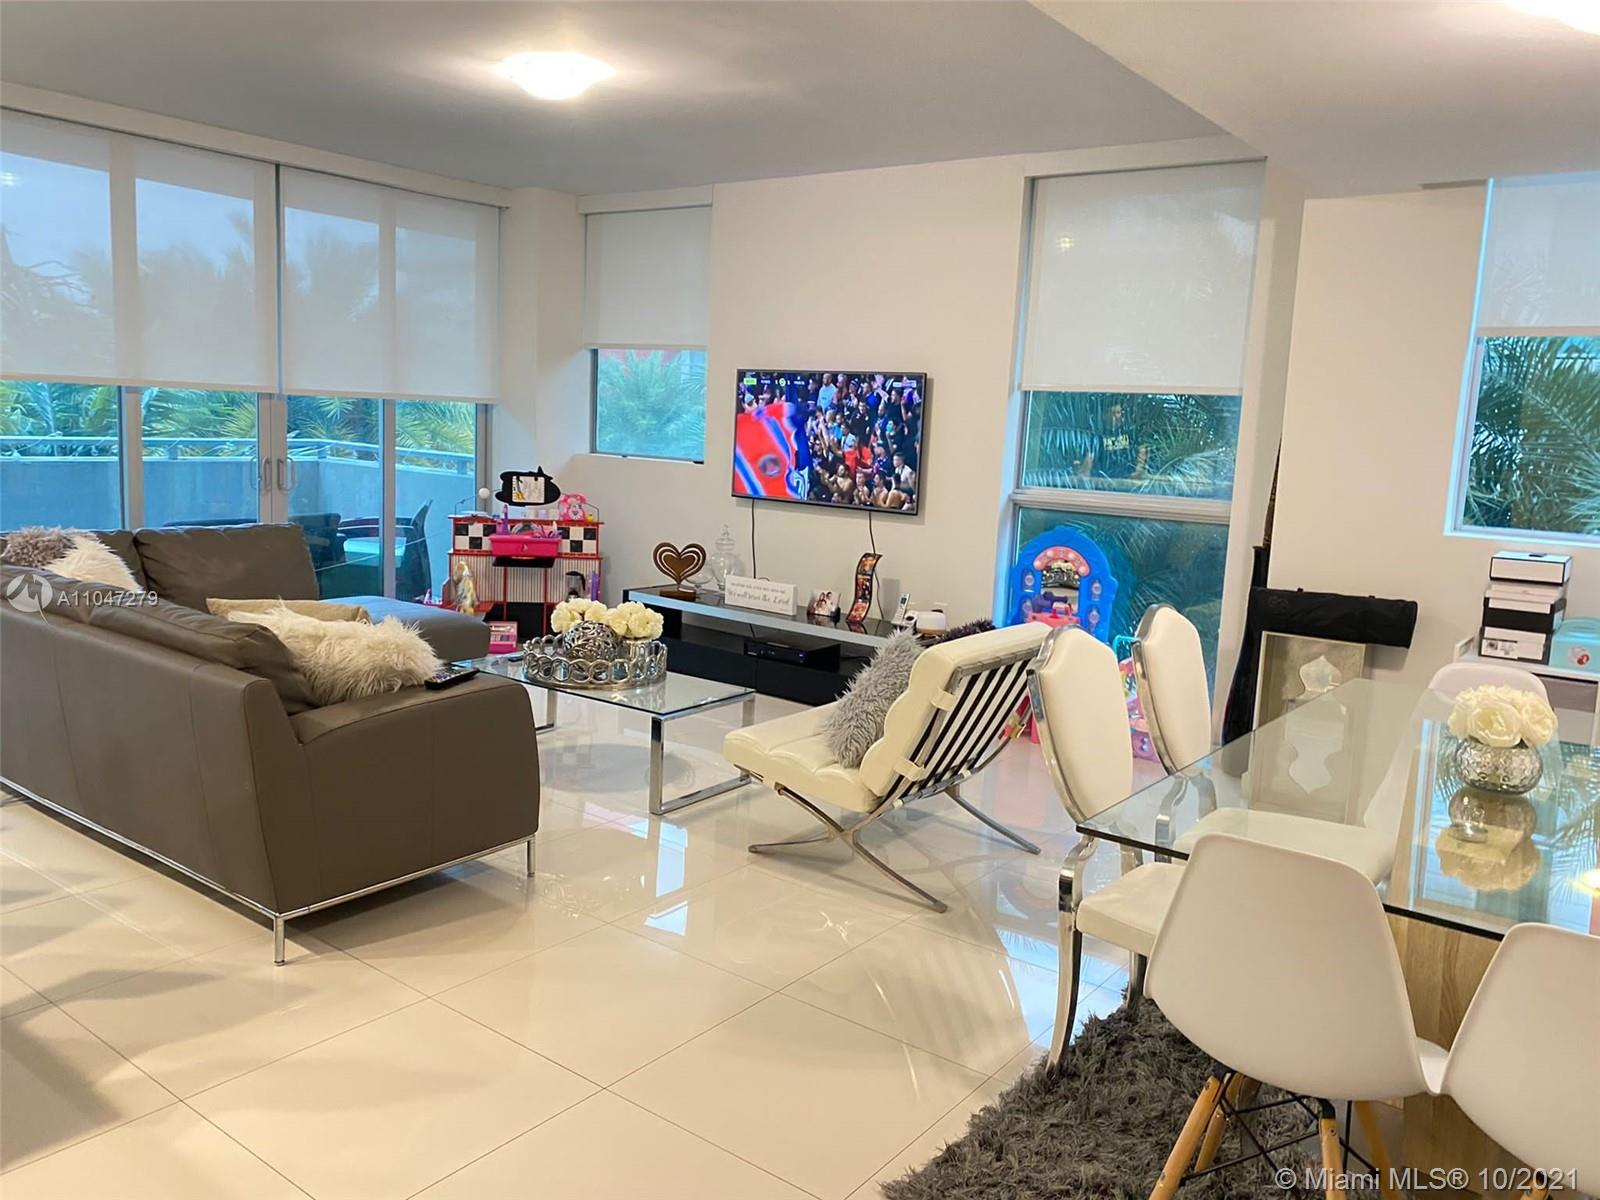 Condo for sale at midtown doral, high impact windows with a beautiful relaxing view. Tenant occupied